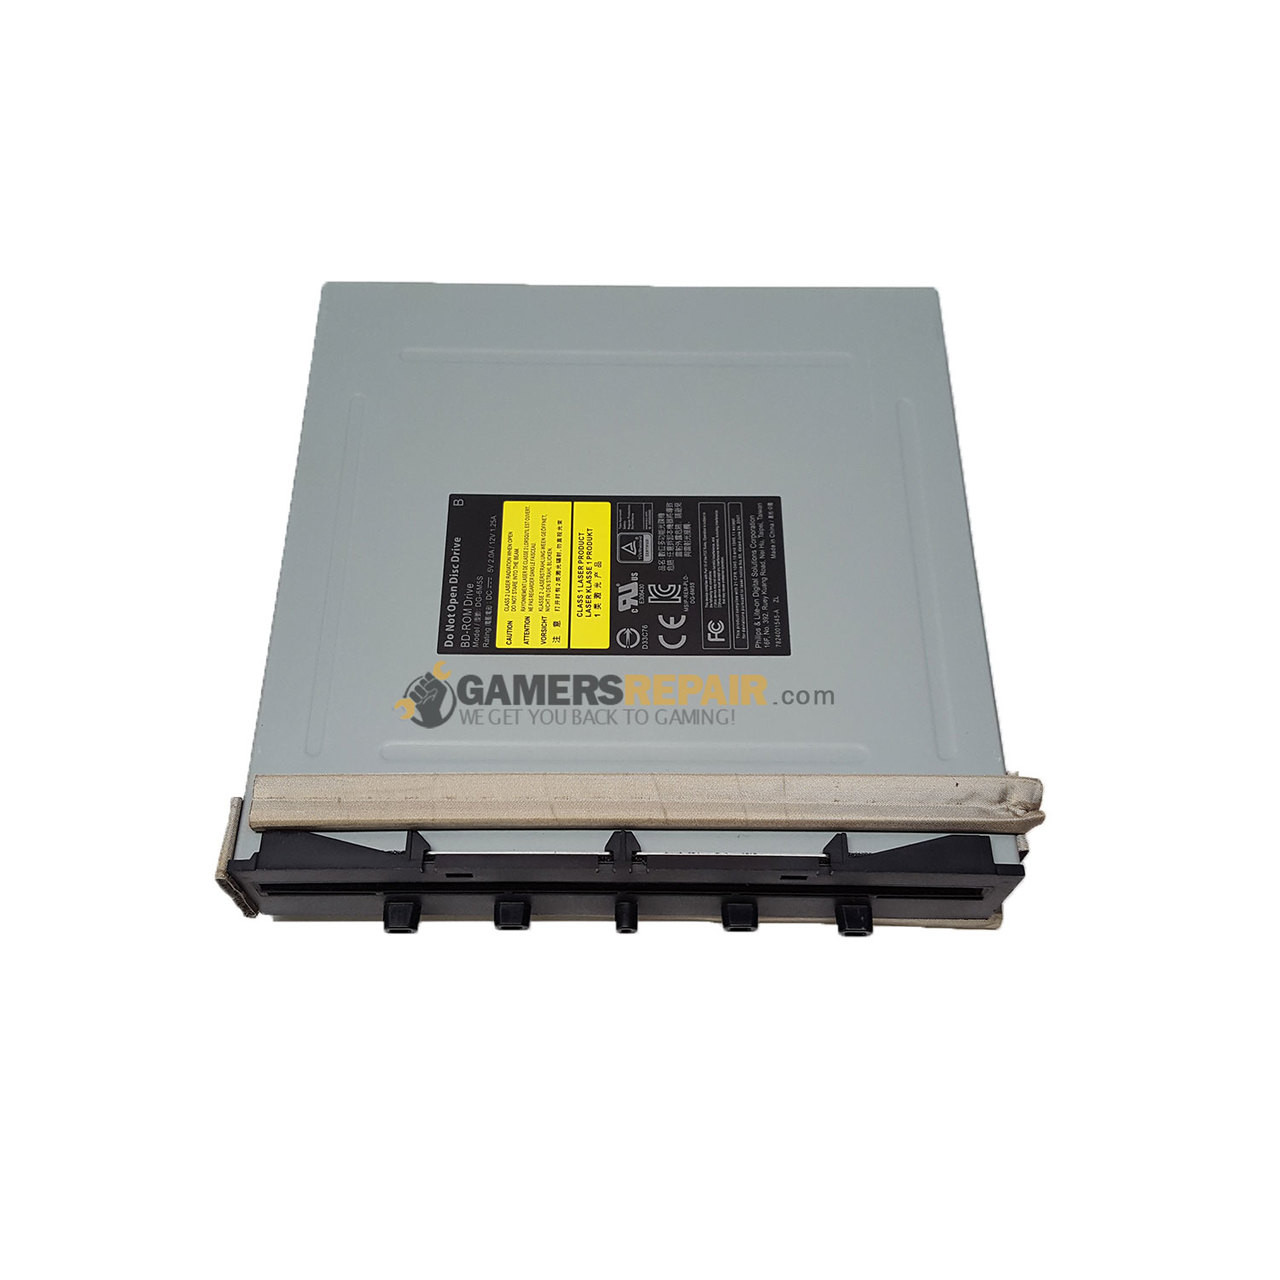 OEM Blu-Ray Disc Drive DG-6M5S for Xbox ONE S